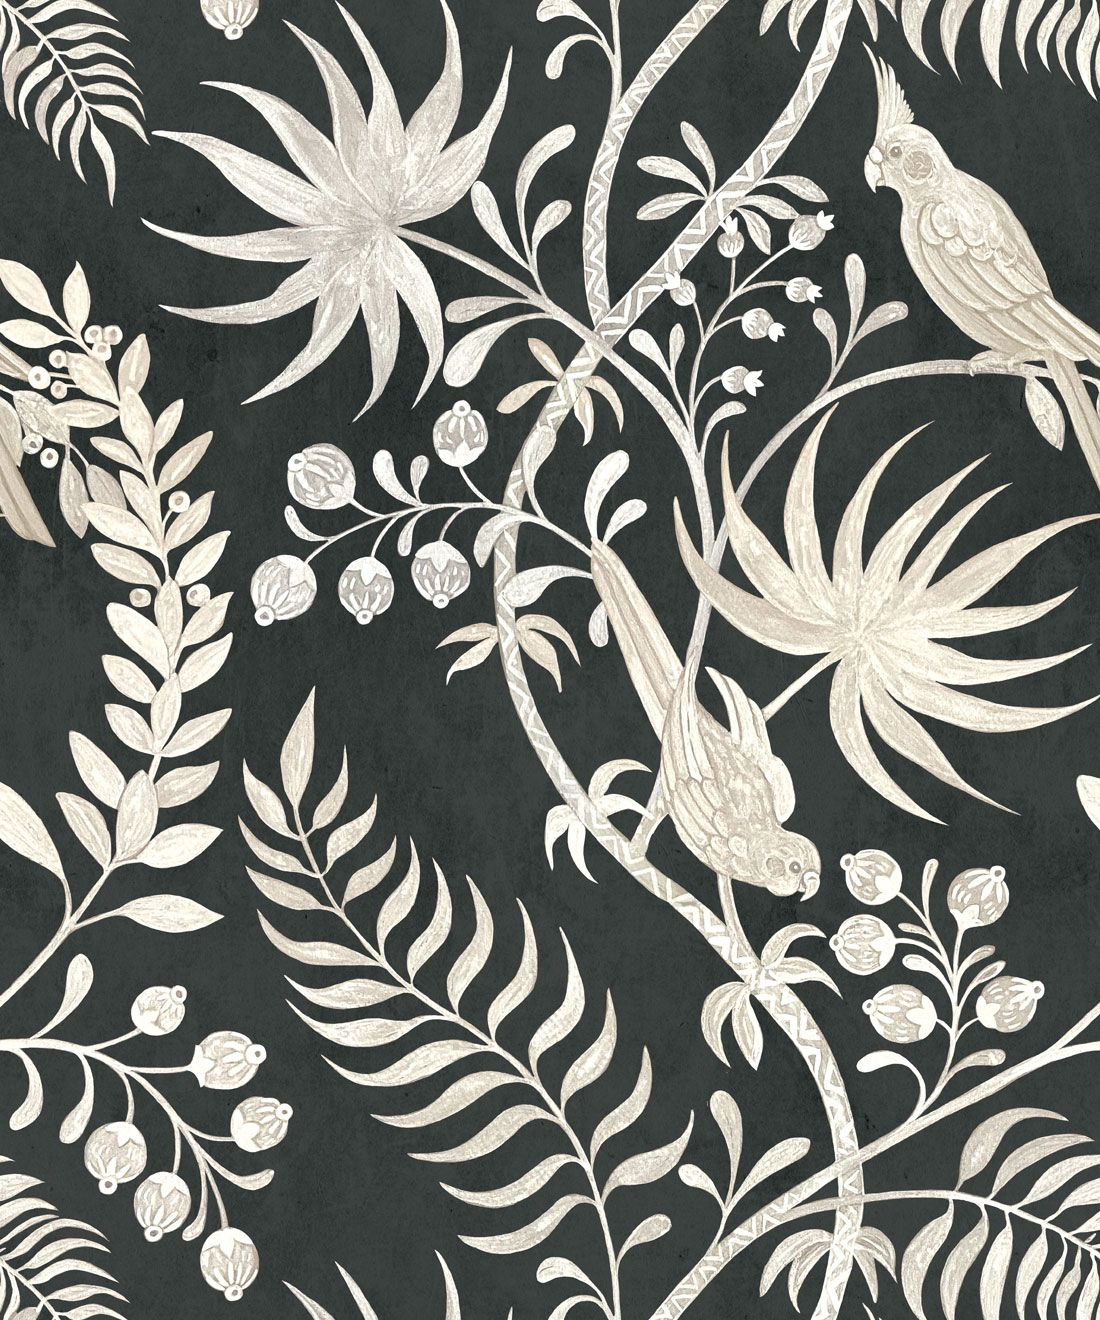 Tropicana Wallpaper • Charcoal • Swatch